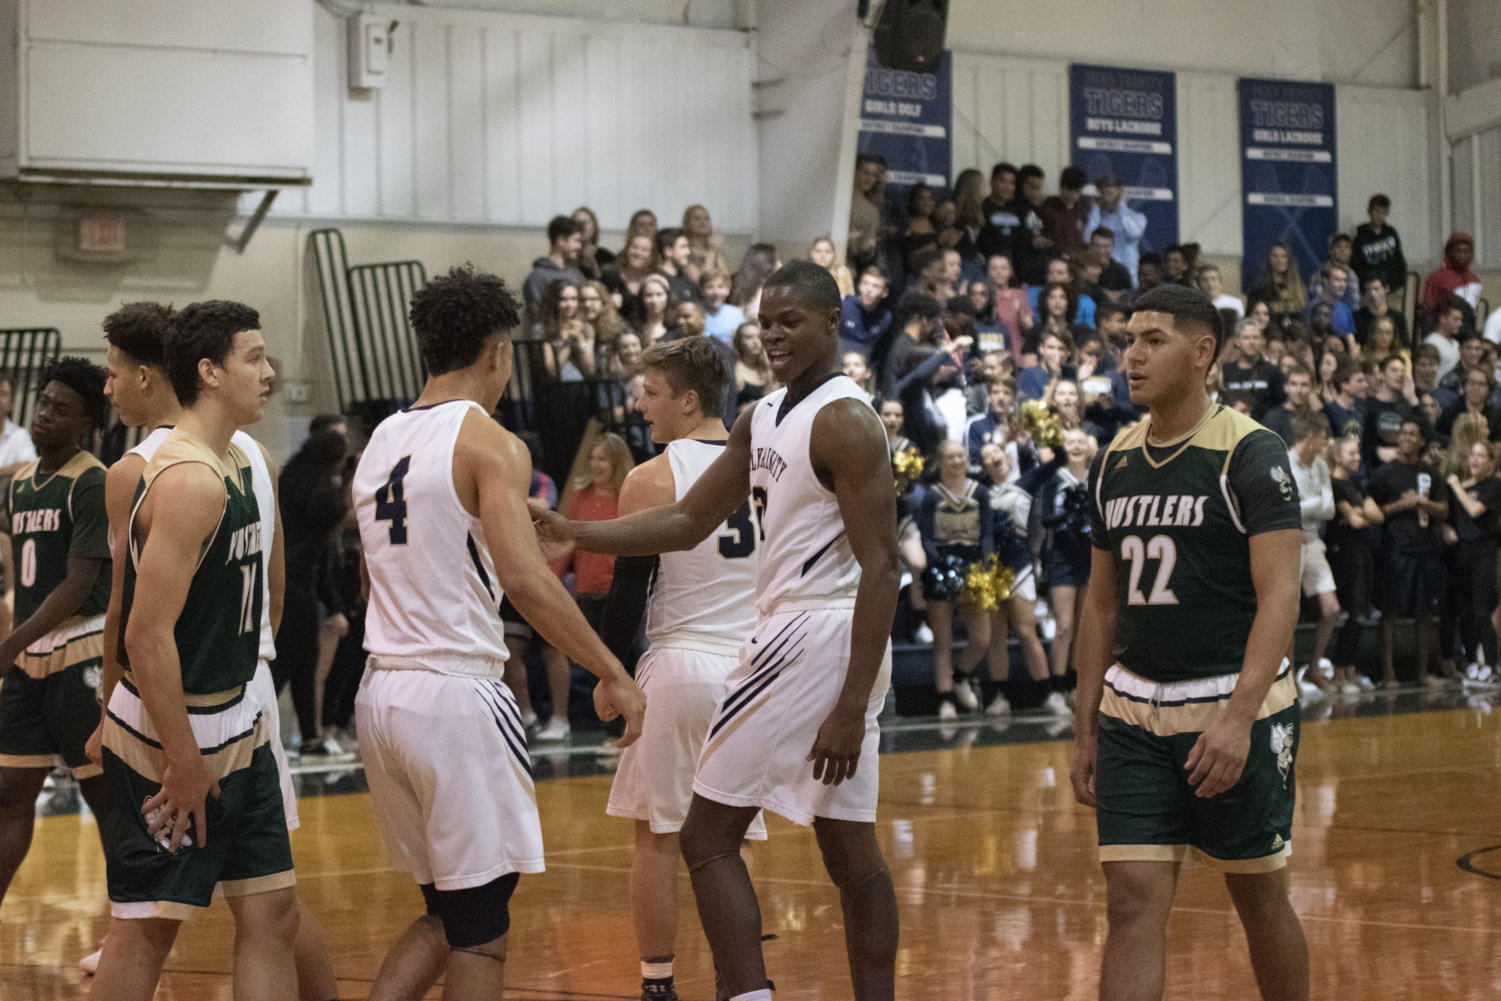 Seth Coleman and Dru Nickson congratulating each other during the game.